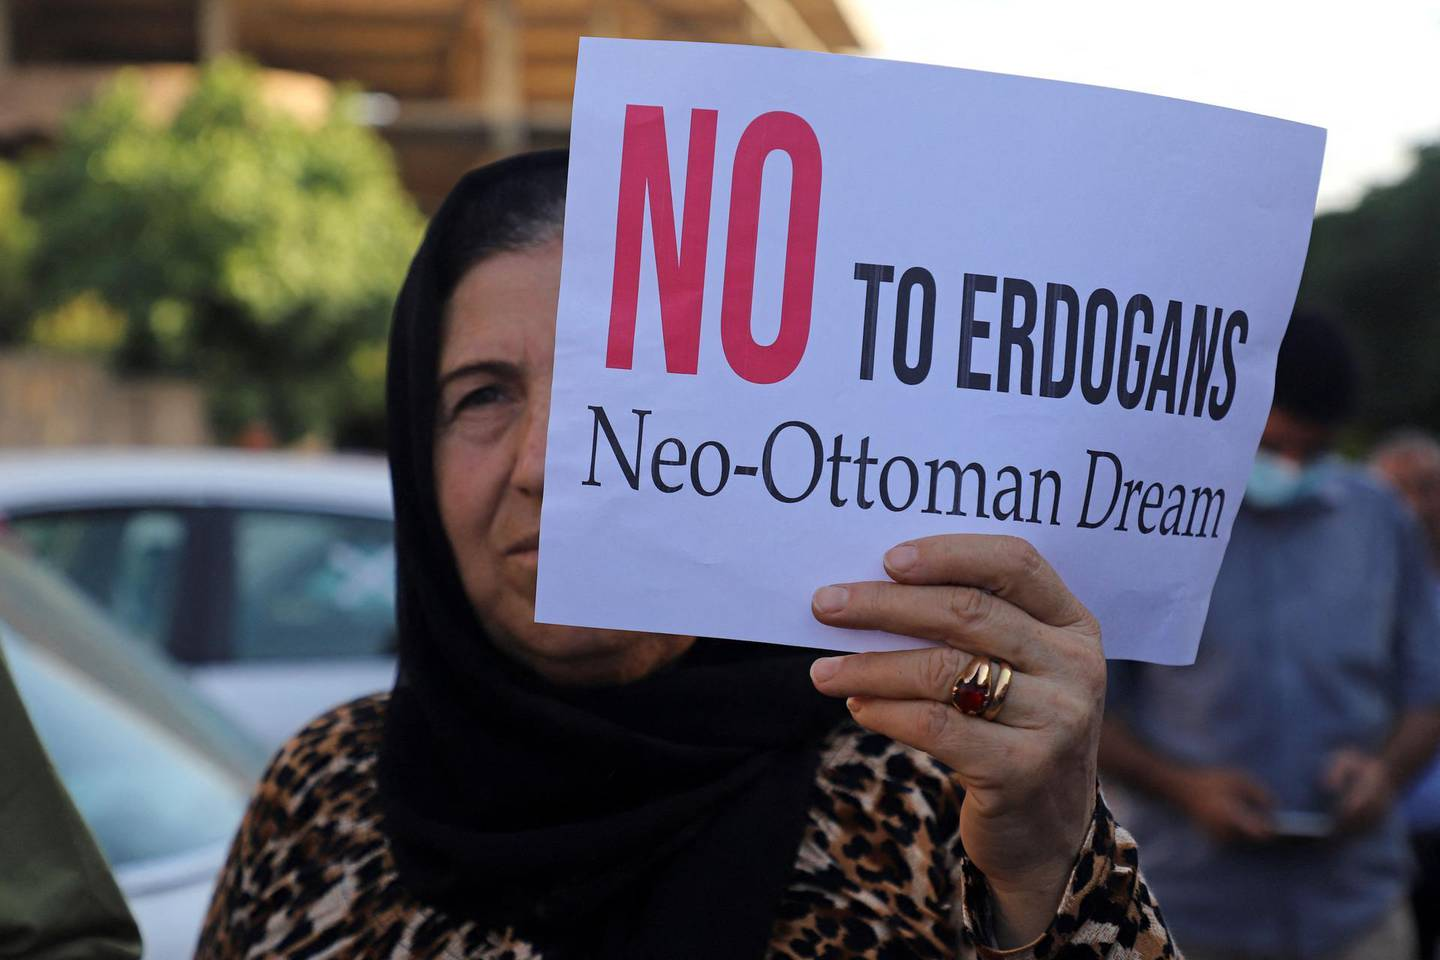 """A woman lifts a placard as Iraqi Kurds demonstrate  in the northeastern city of Sulaimaniyah on June 5, 2021, protesting a Turkish offensive in northern Iraq. Three civilians were killed in a Turkish drone attack on a refugee camp in northern Iraq in an area which Turkish President Recep Tayyip Erdogan recently threatened to """"clean up"""". / AFP / Shwan MOHAMMED"""